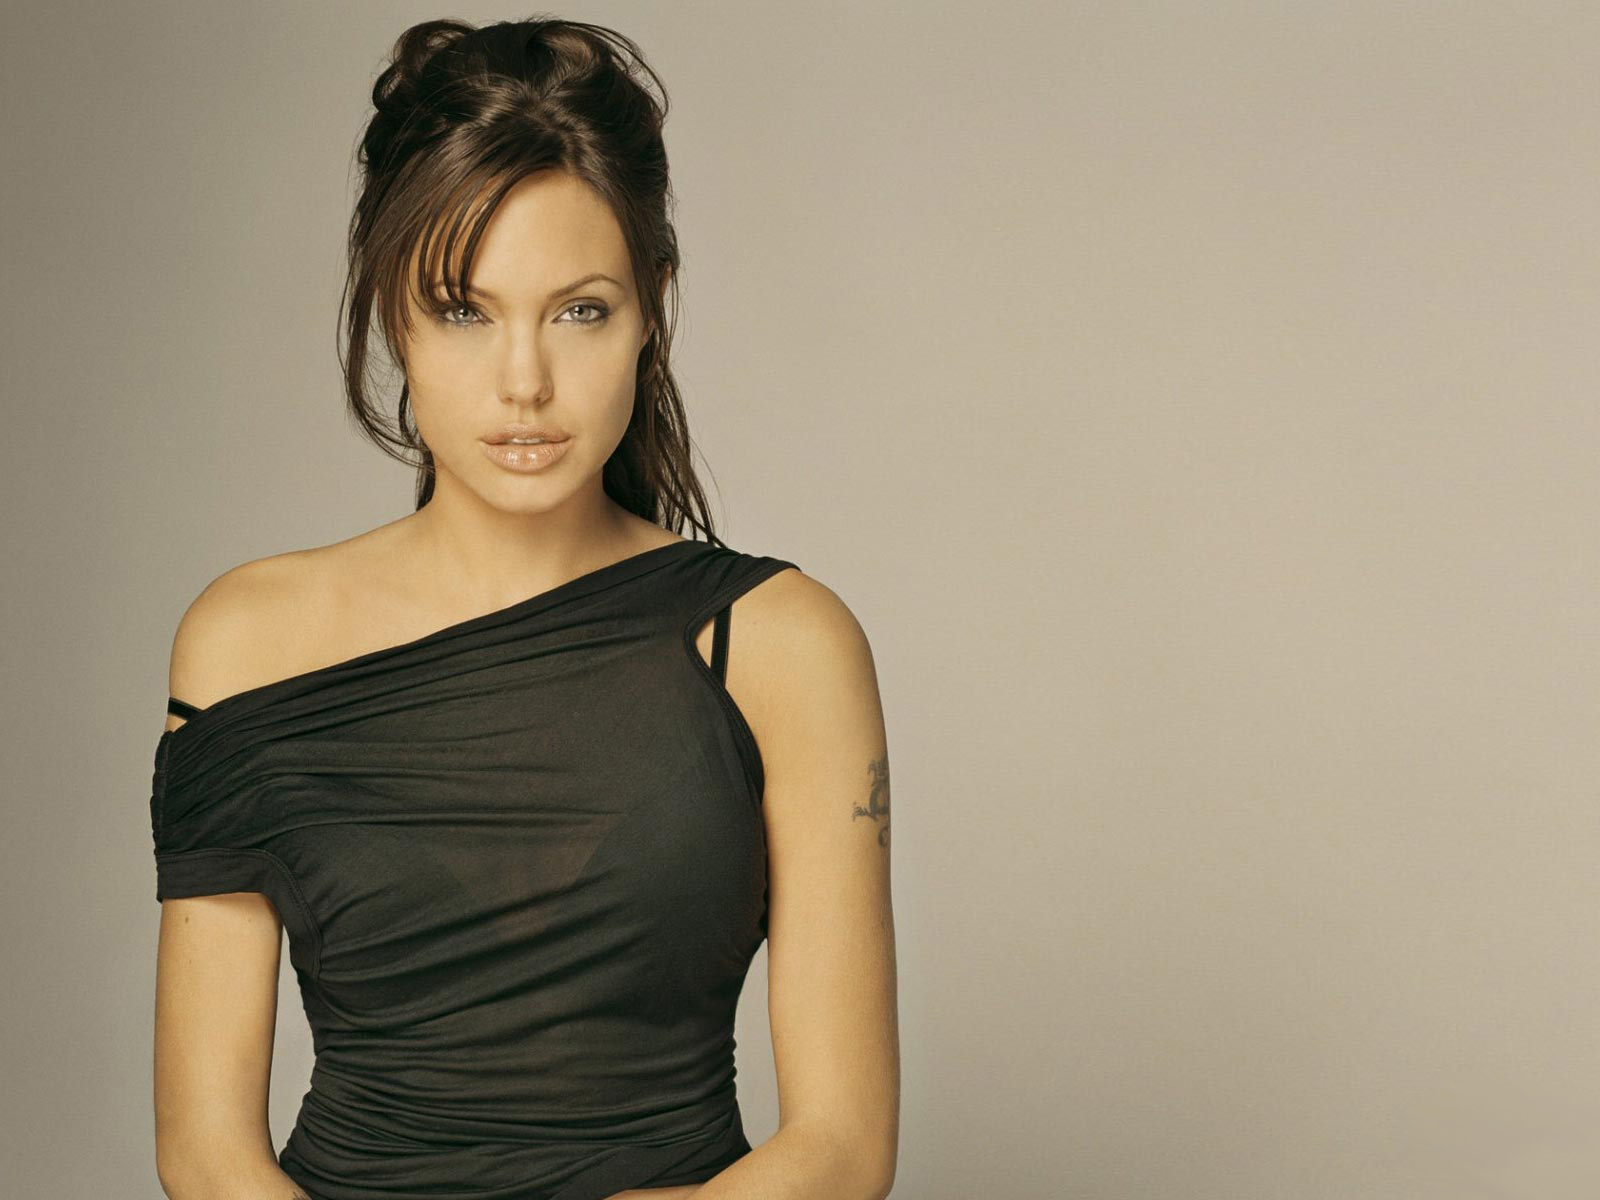 Angelina Jolie Wanted Wallpapers - THIS Wallpaper